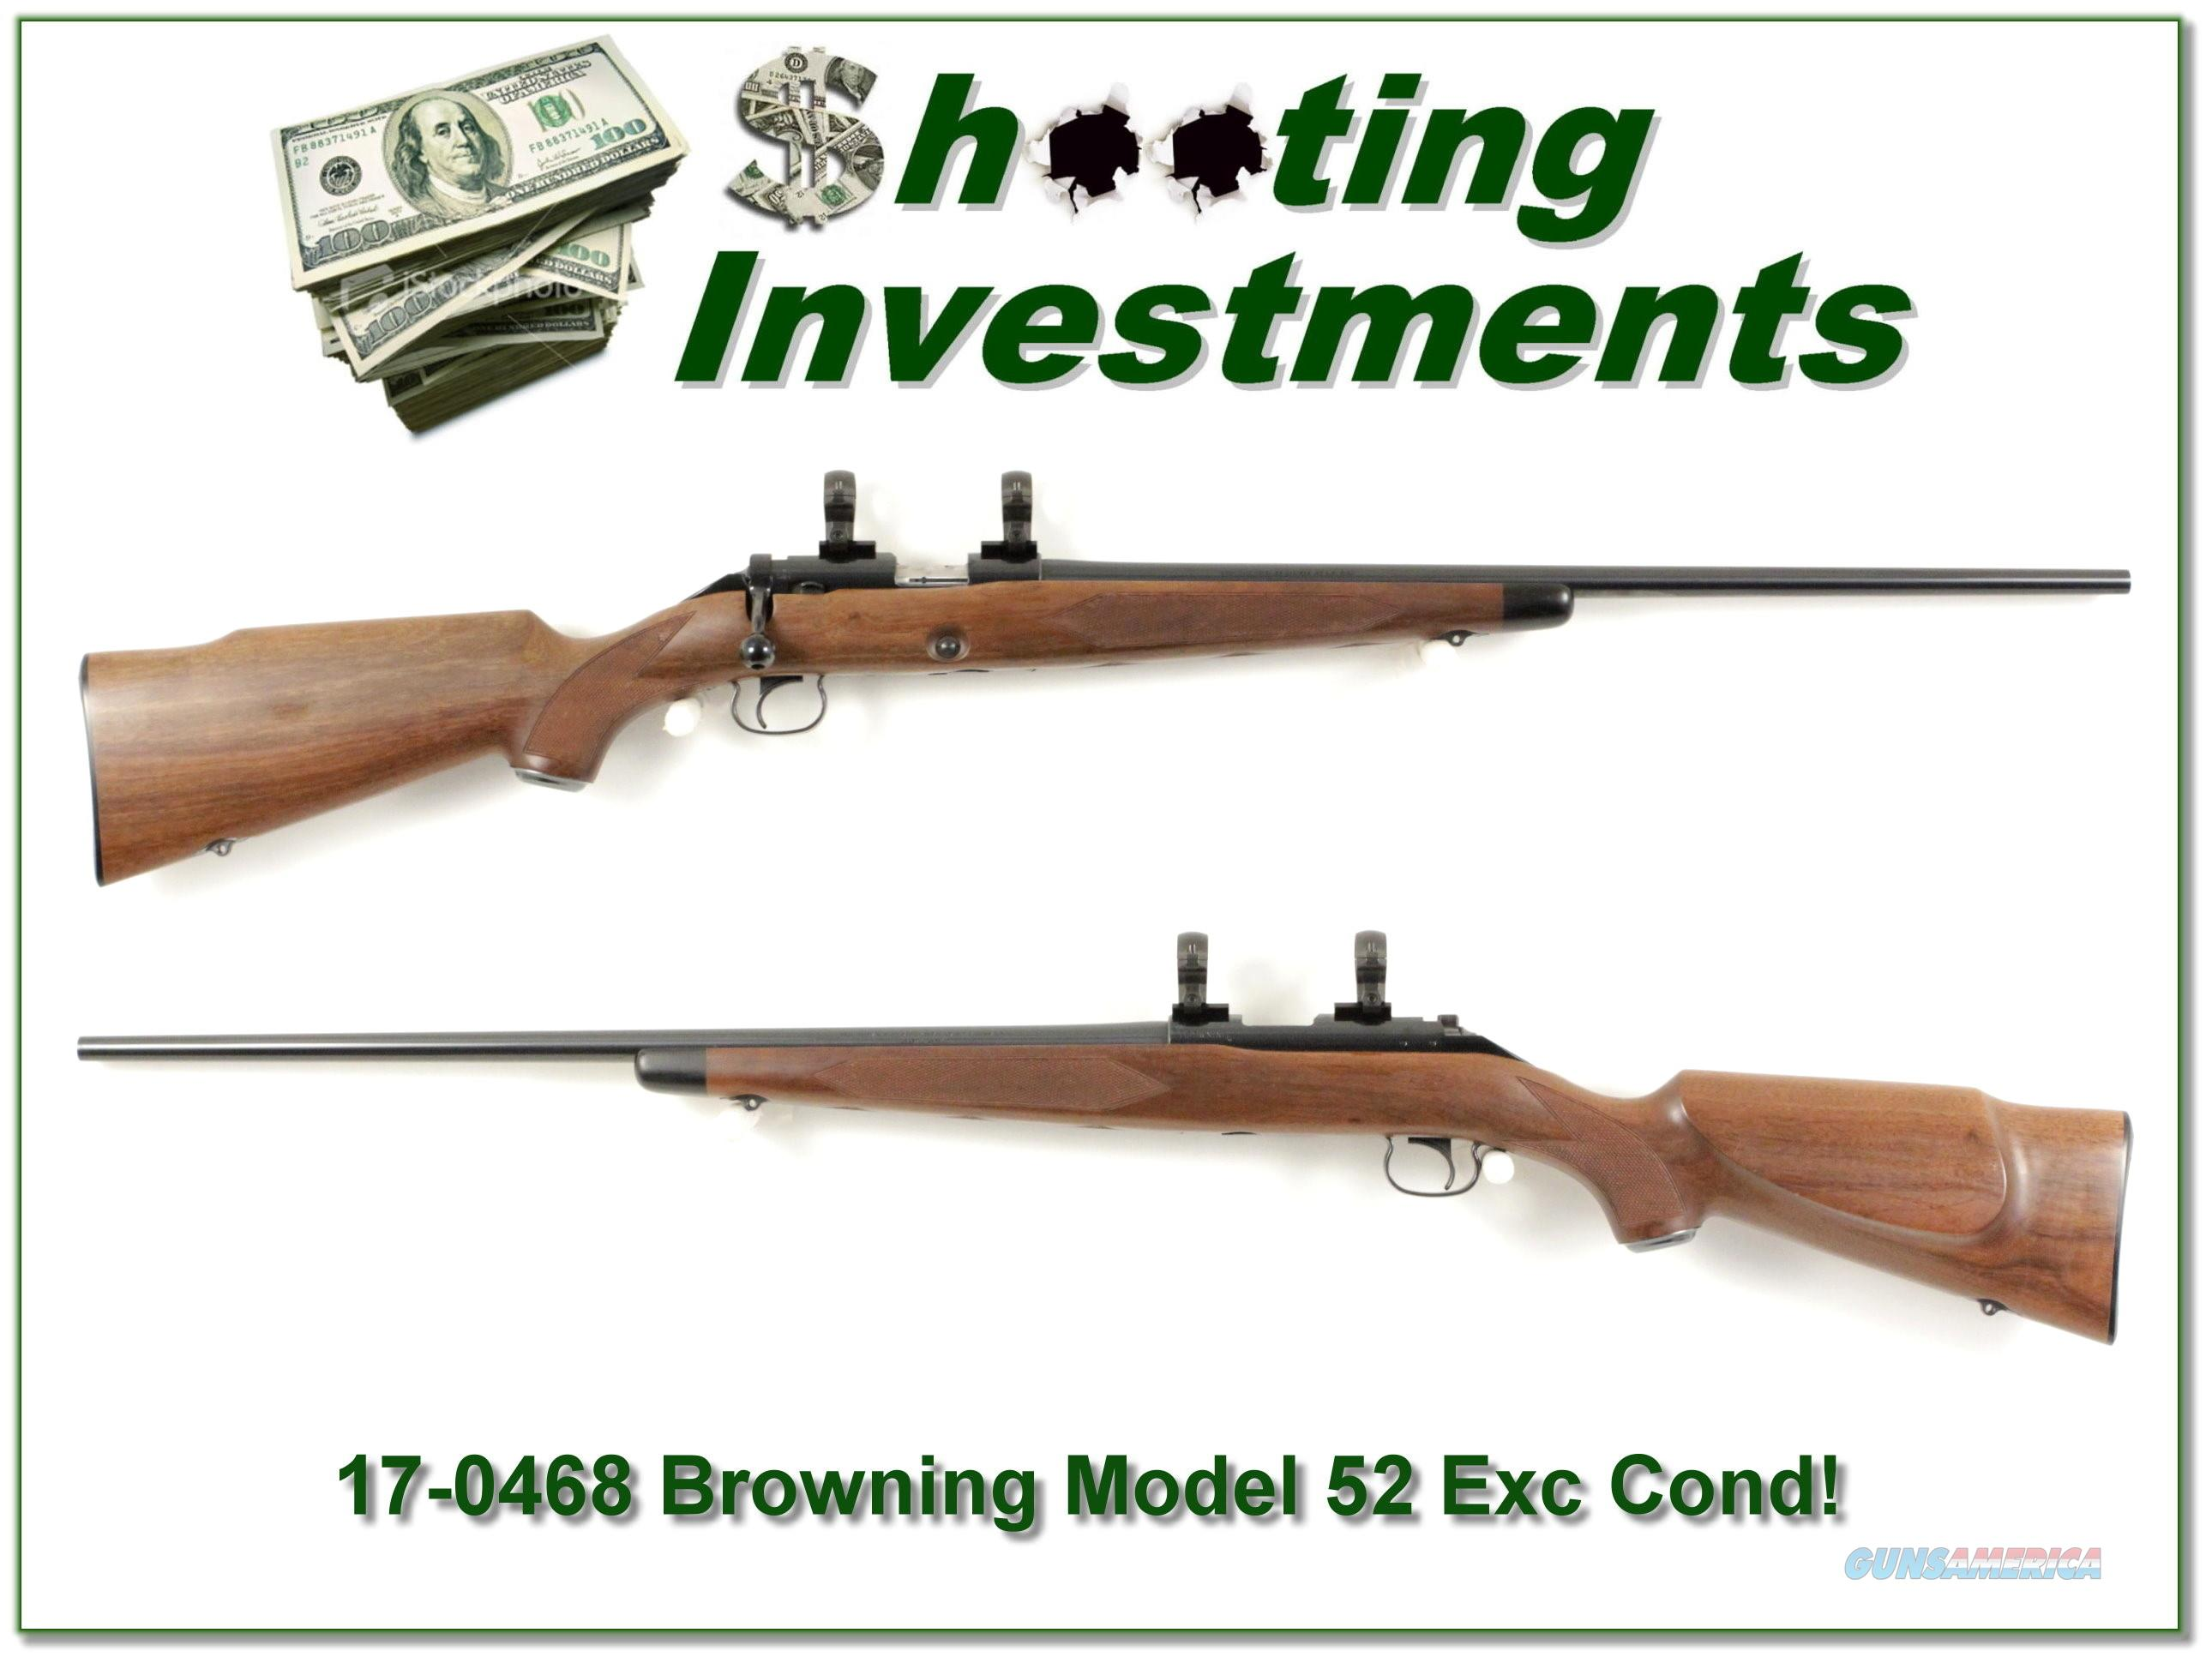 Browning Model 52 22 LR Rimfire near new!  Guns > Rifles > Browning Rifles > Bolt Action > Hunting > Blue